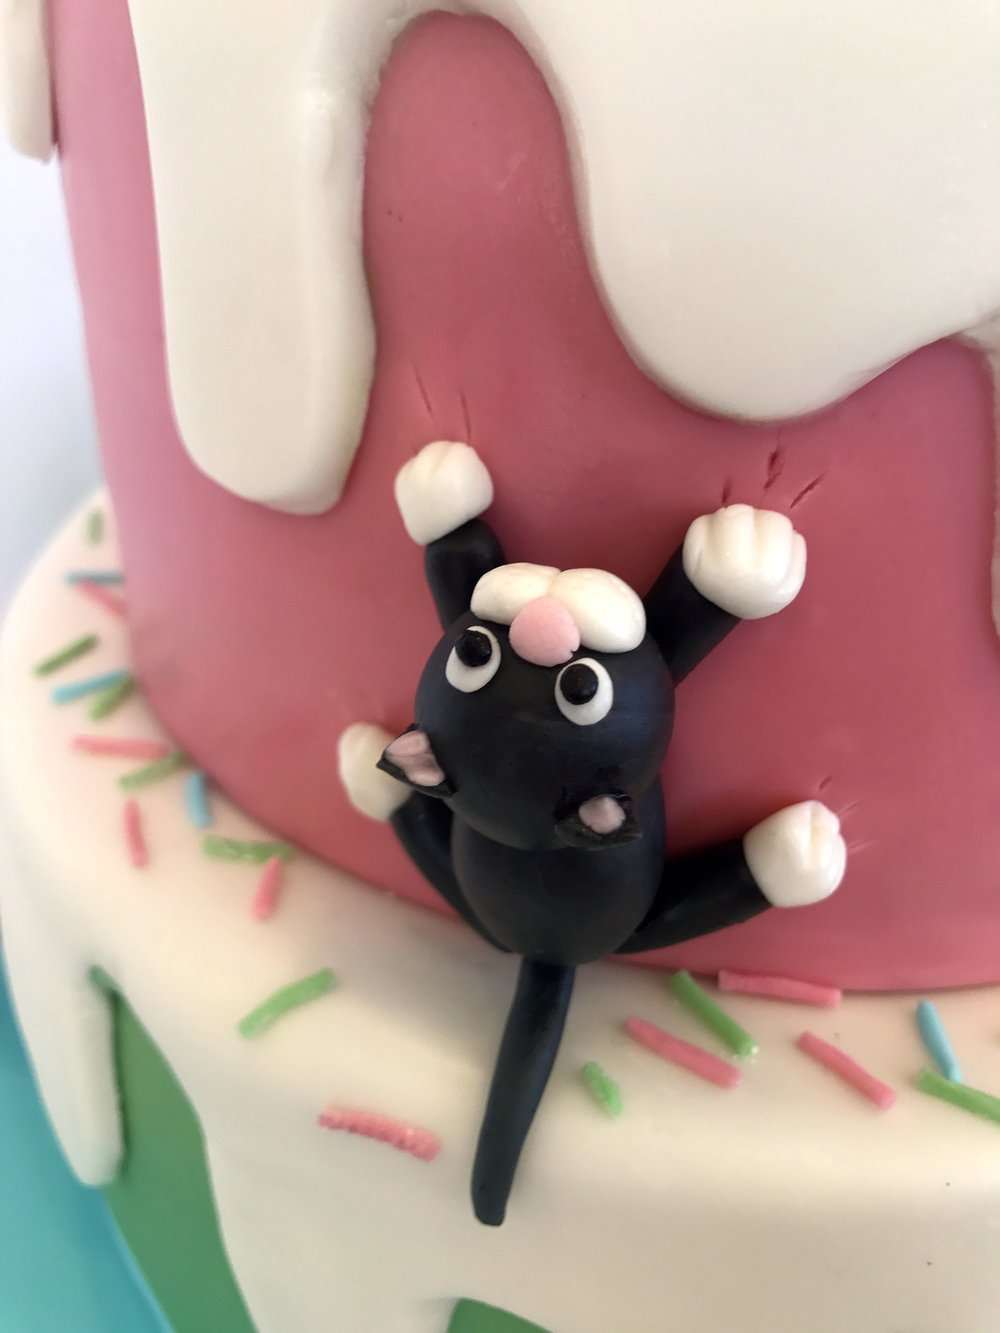 See the claw-marks made by this cat climbing up the cake?!